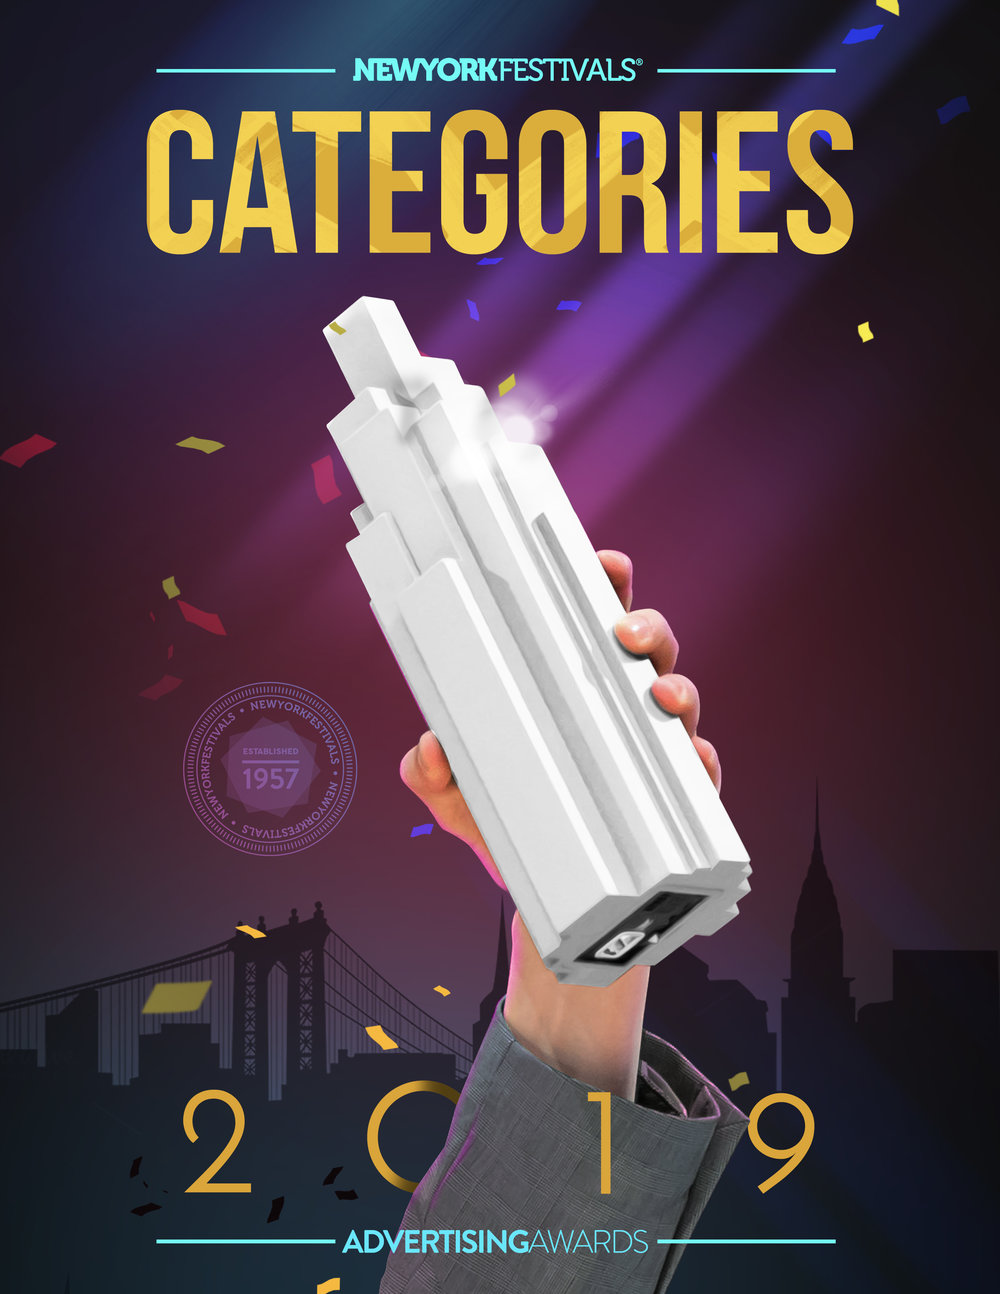 Find details about the categories within each of the 20 category groups, to select where your entry fits best. Most categories allow single or campaign entries, specific details and entry limits can be found with each competition in the document. -